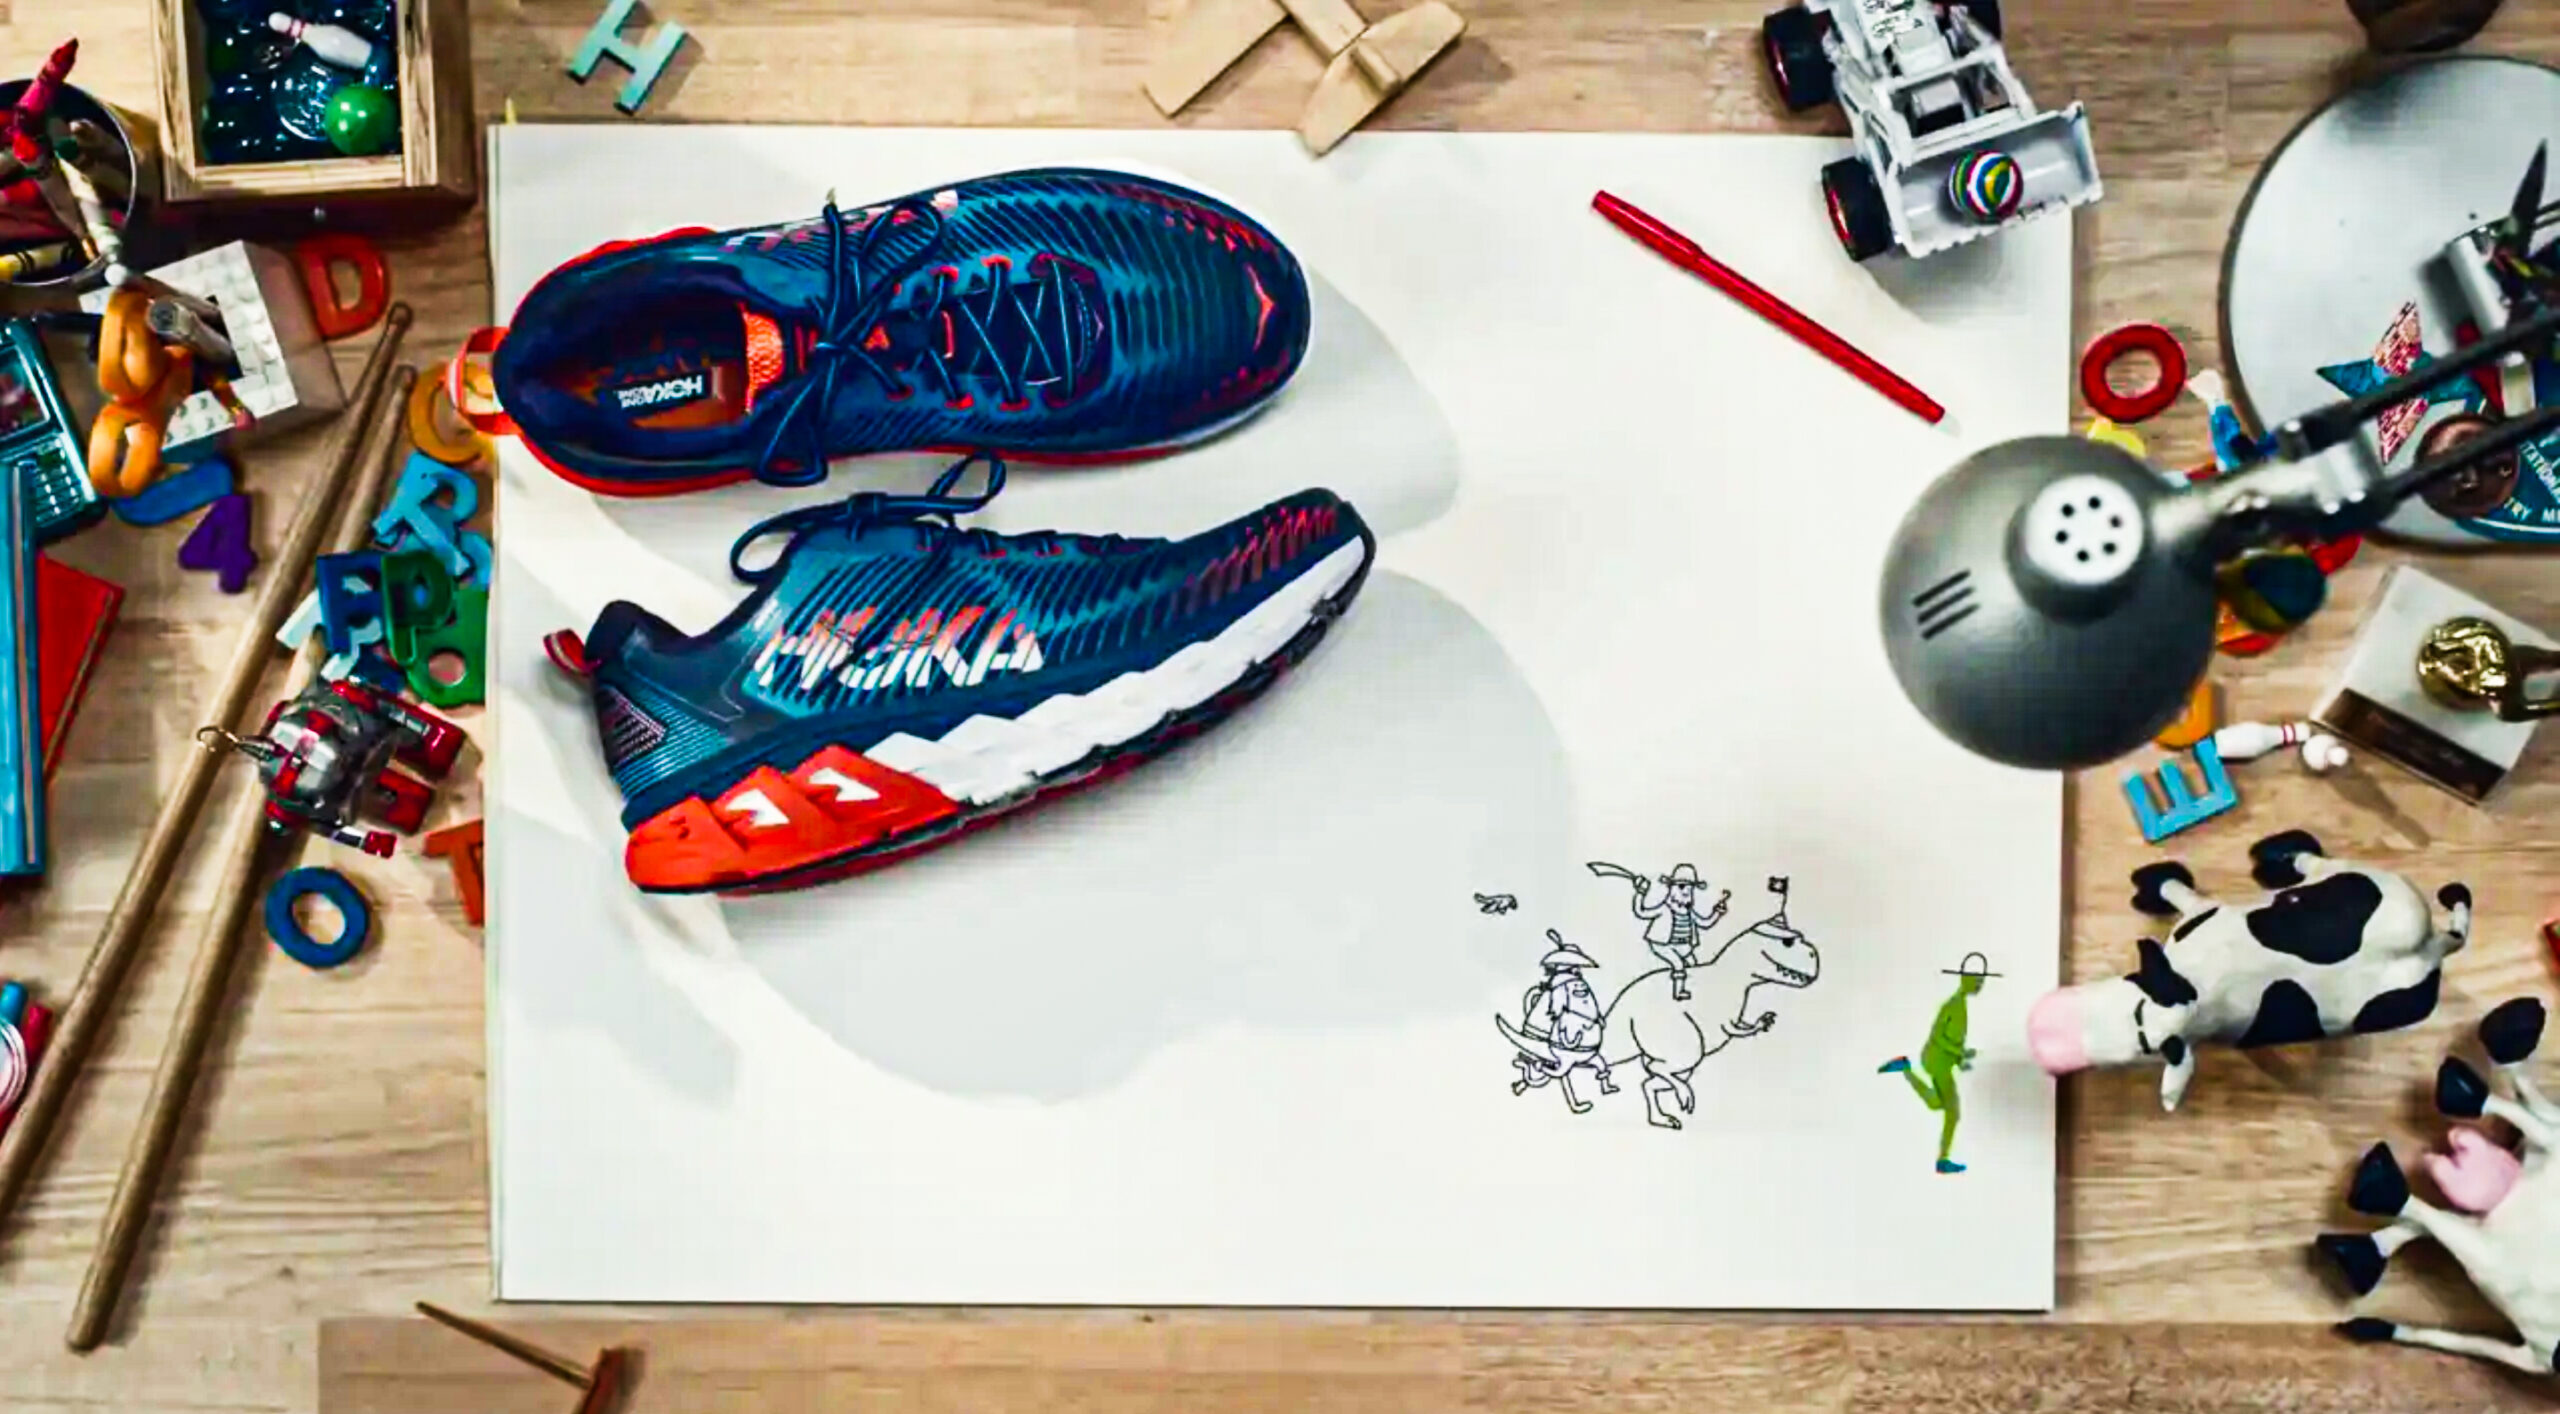 From keys to cows, stylist Jeanette Moncada gathers props for a sneaker commercial. Photograph by Tyler McPherron.